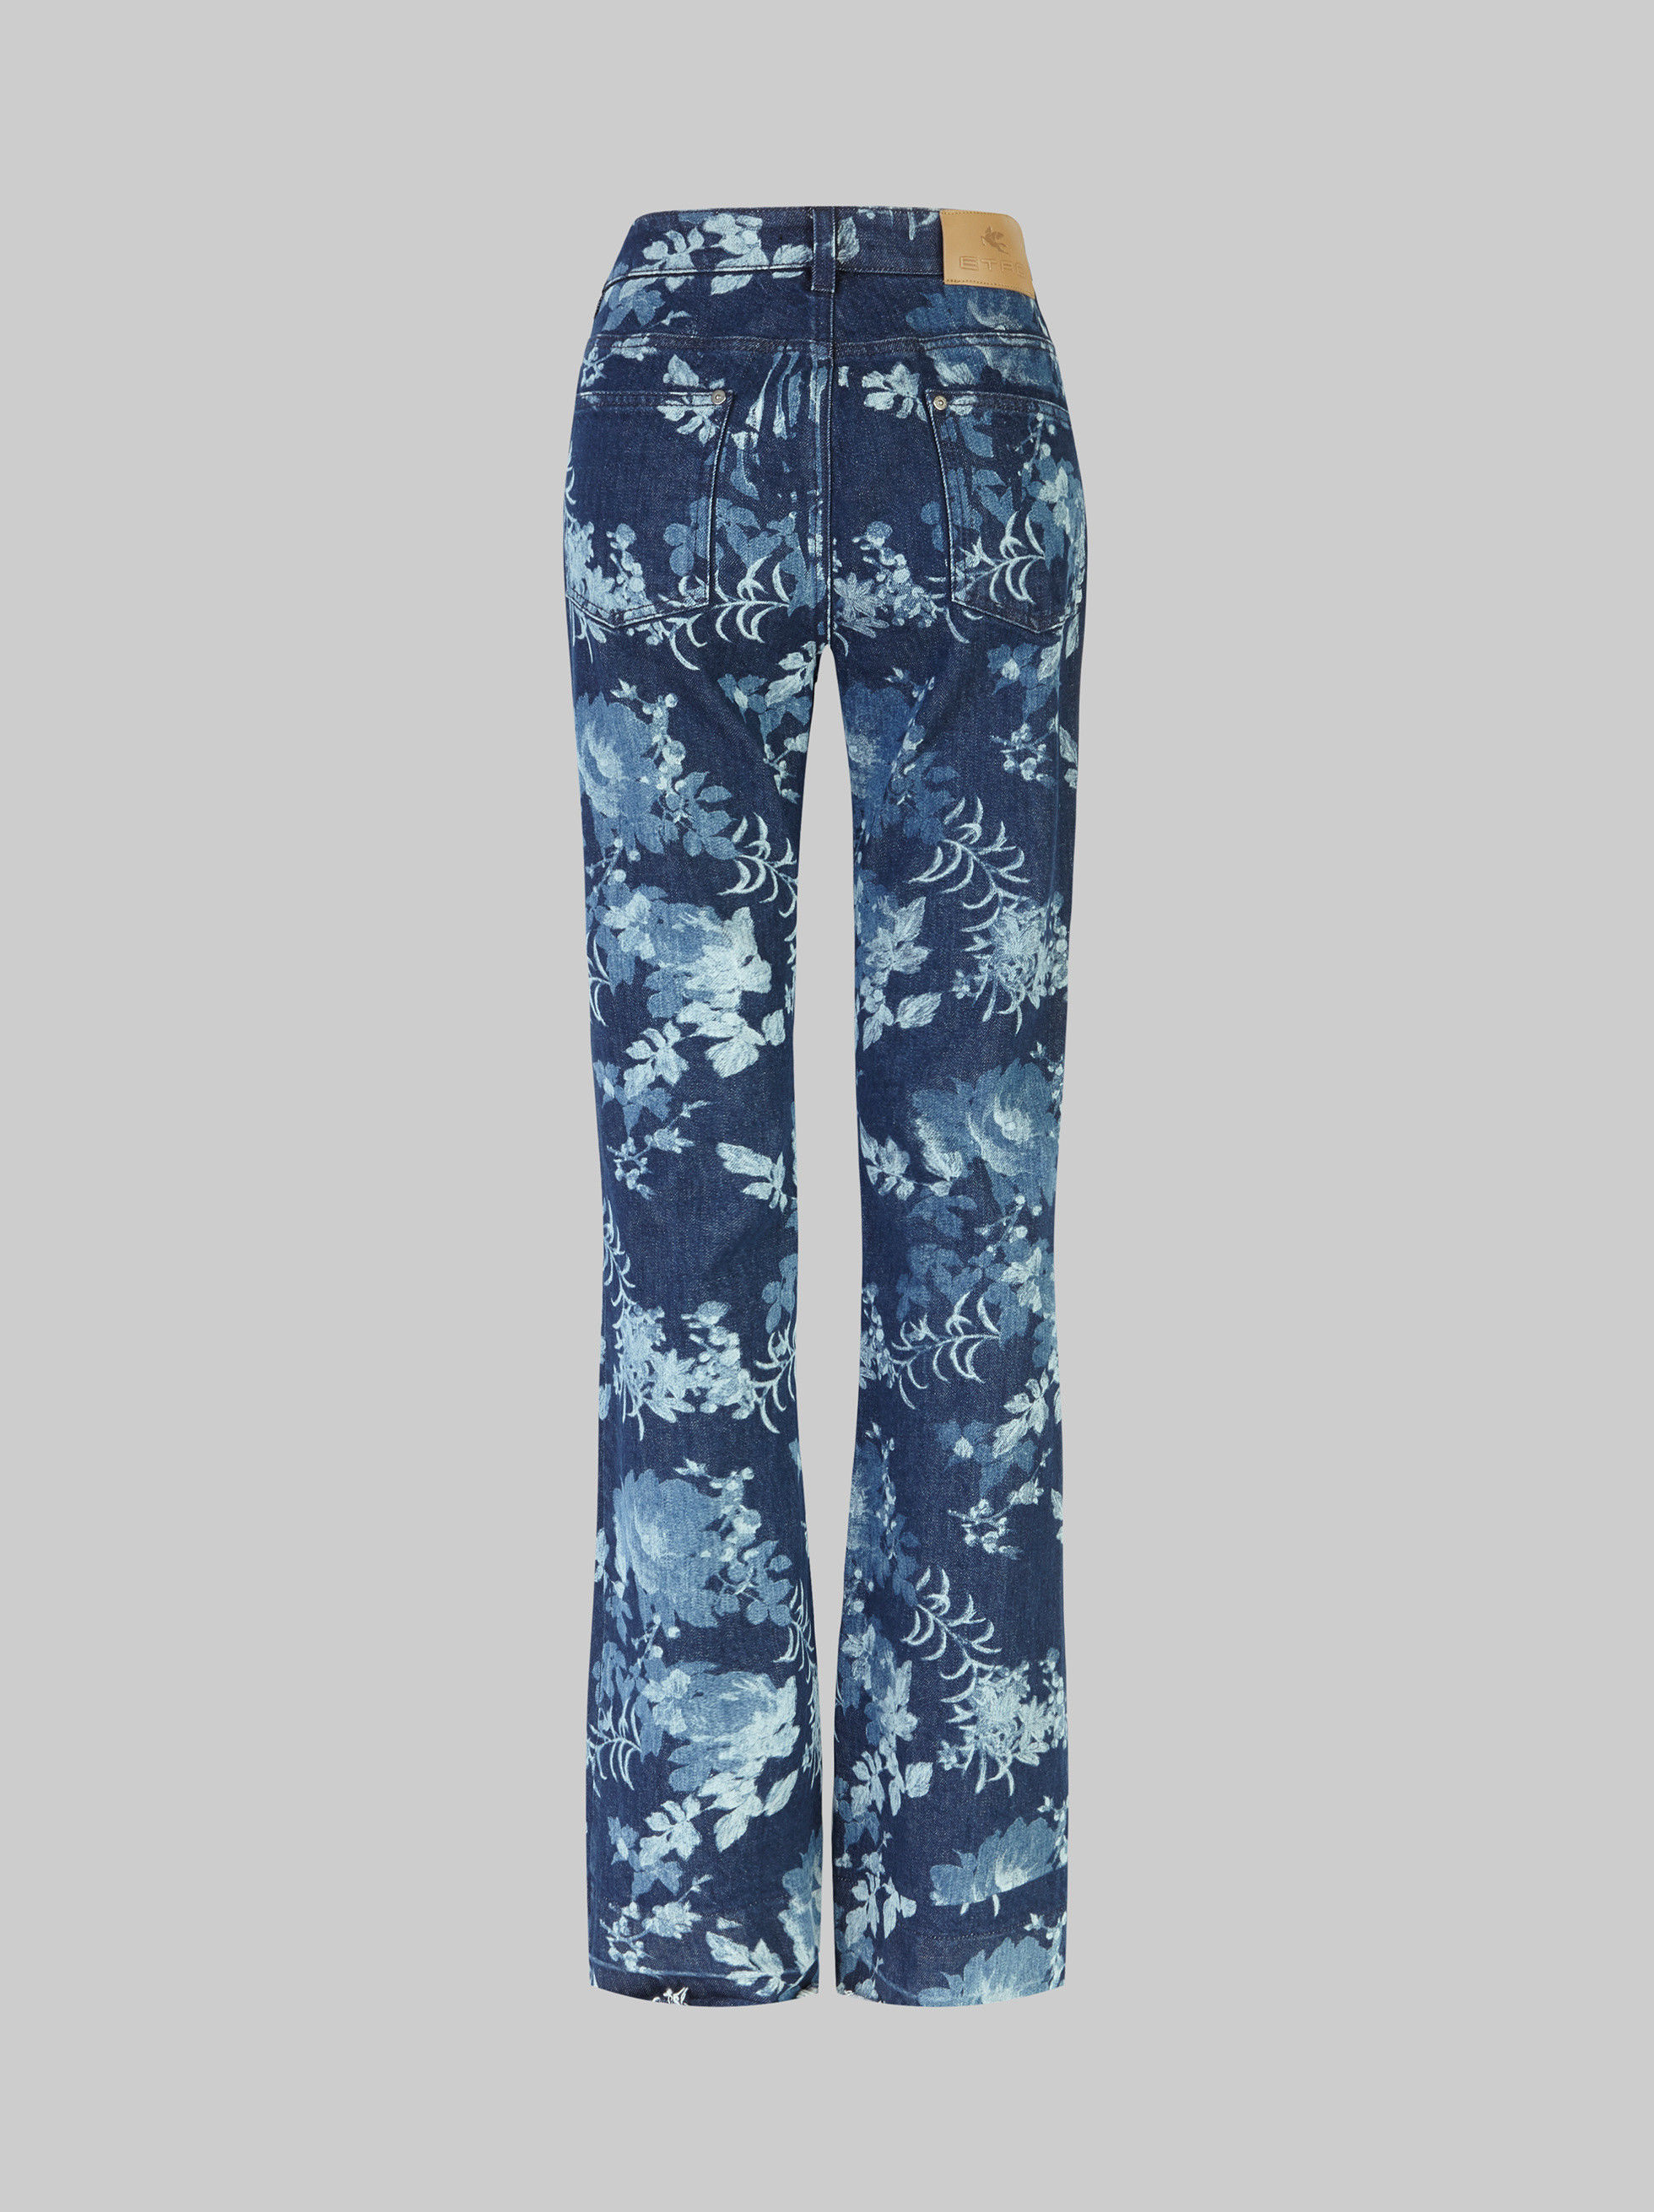 CORROSION EFFECT JEANS